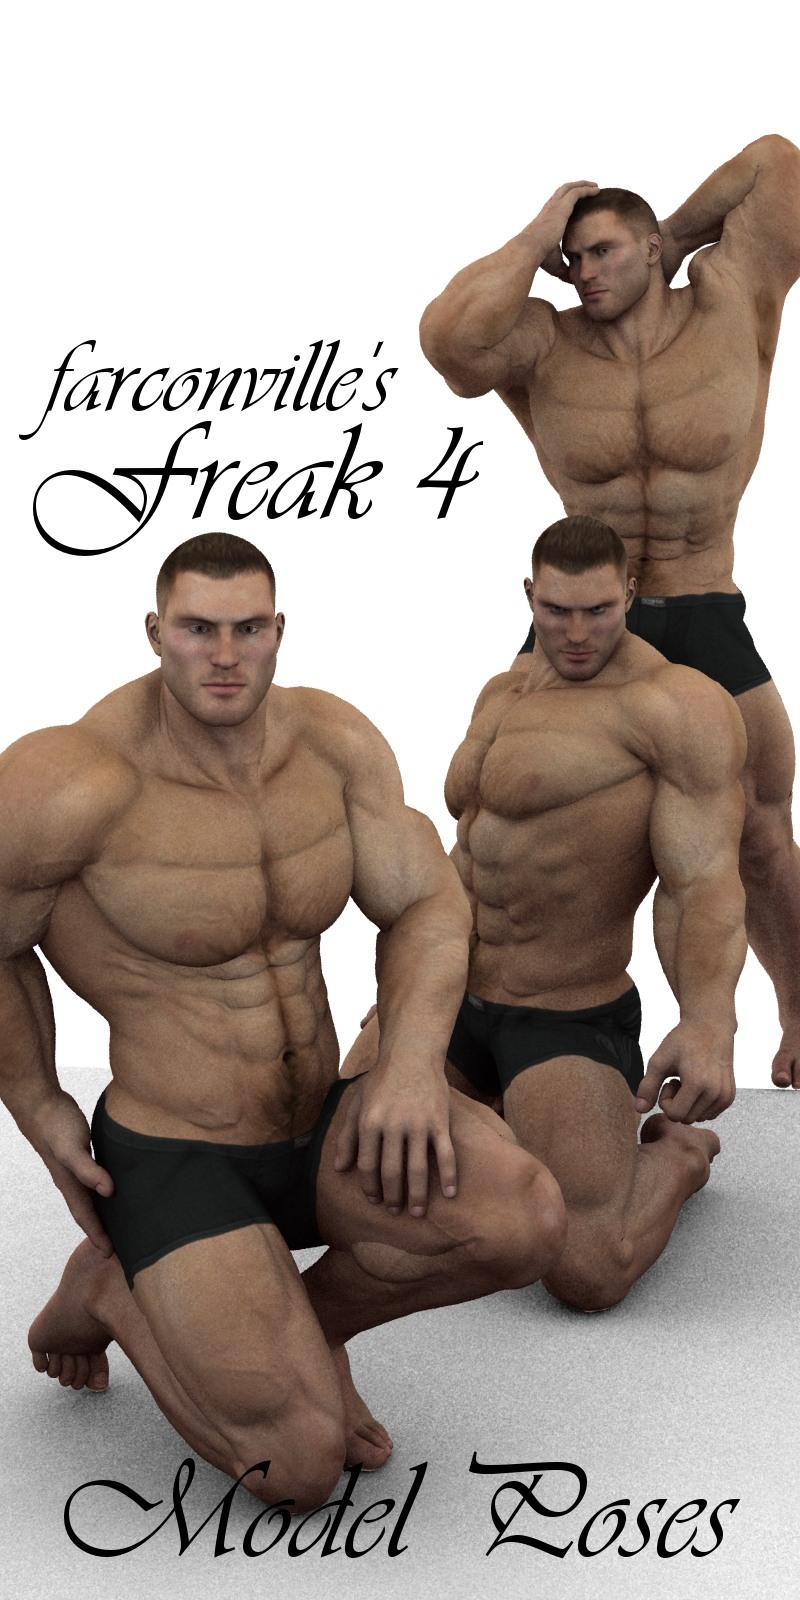 Farconville's Model Poses for Freak 4